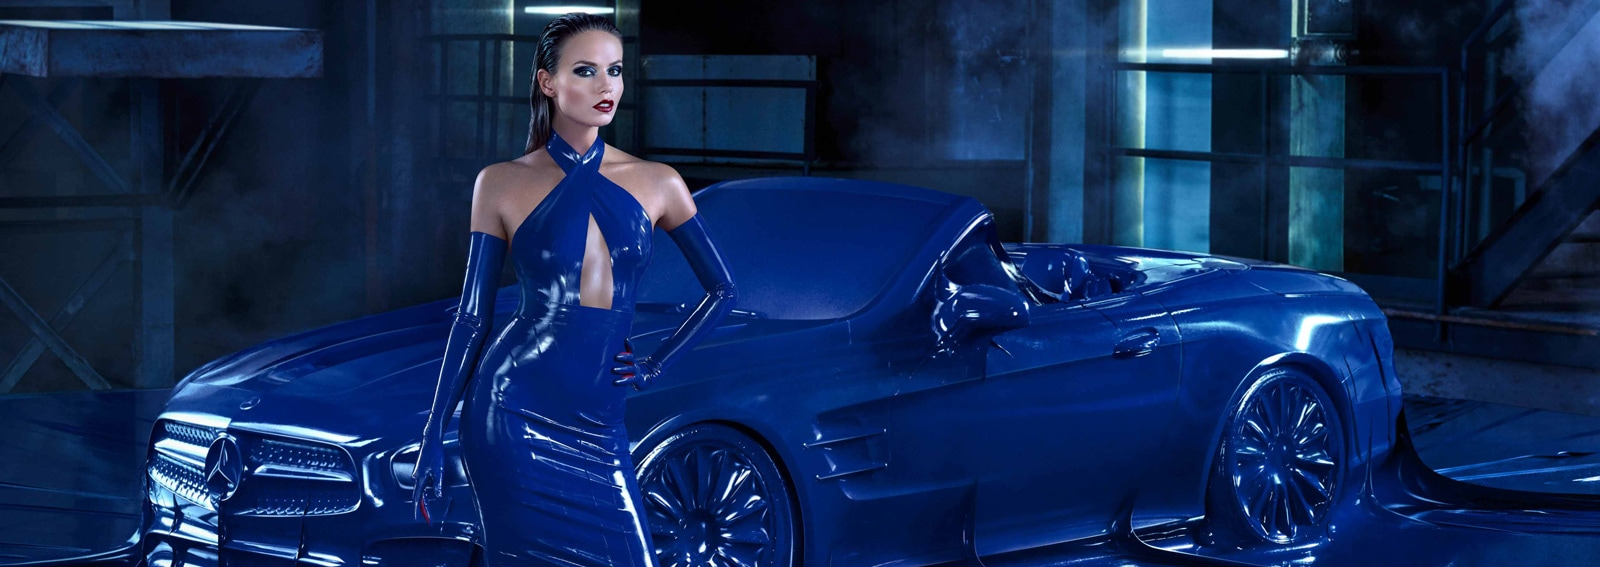 Mercedes-Benz-Fashion-Campaign-Autunno-Inverno-2016-(2)